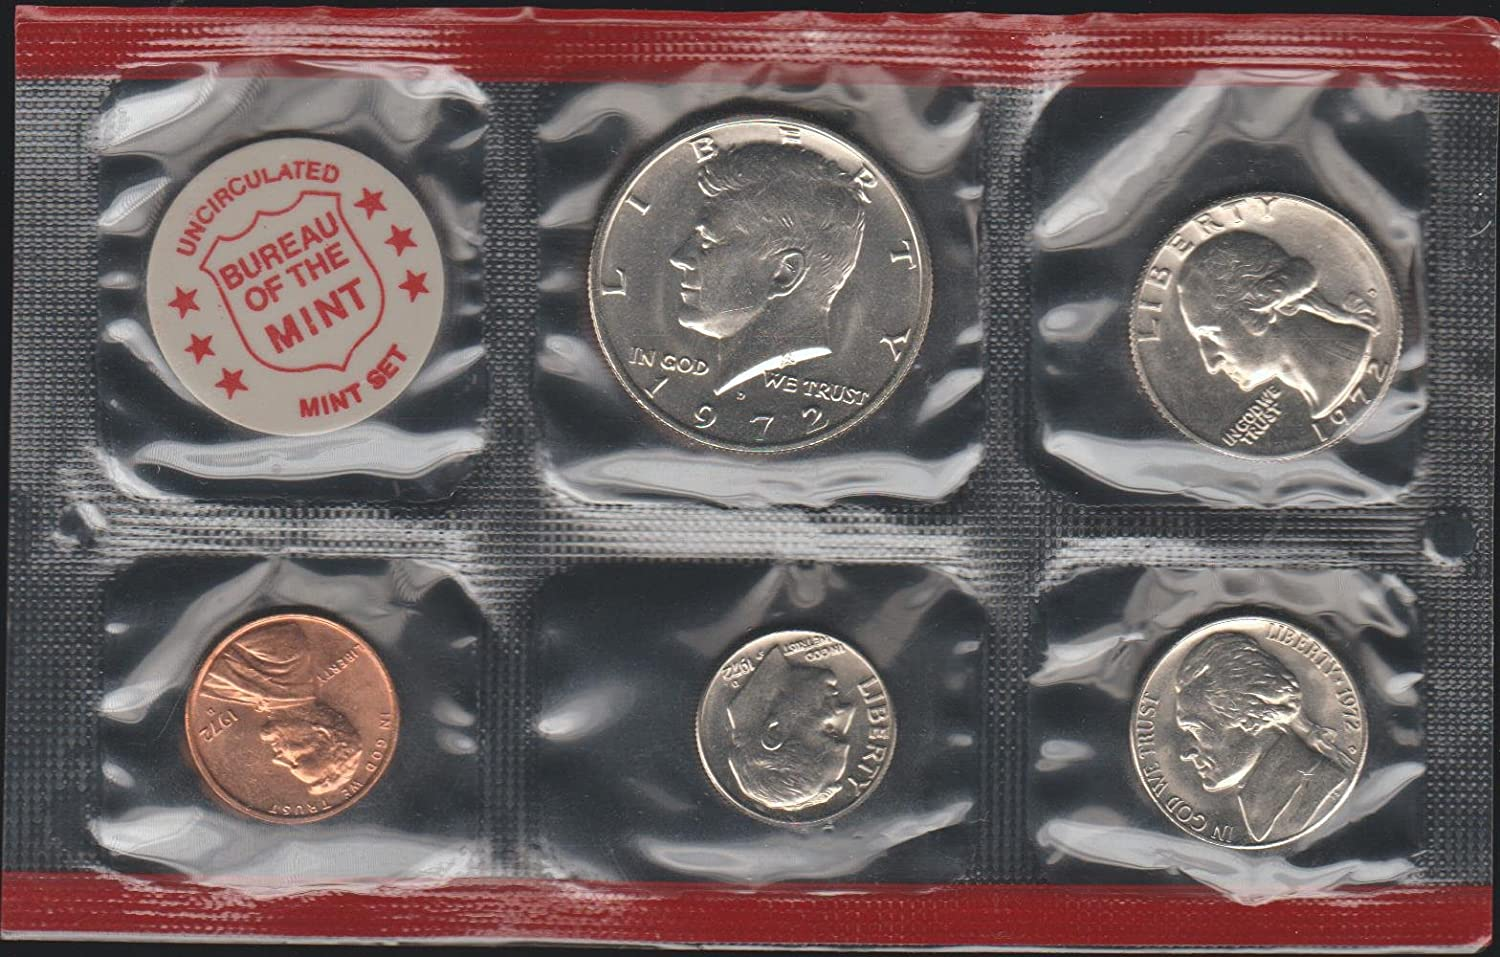 Us Mint As Pictured The Latest Fashion 1972 Uncirculated Coin Set